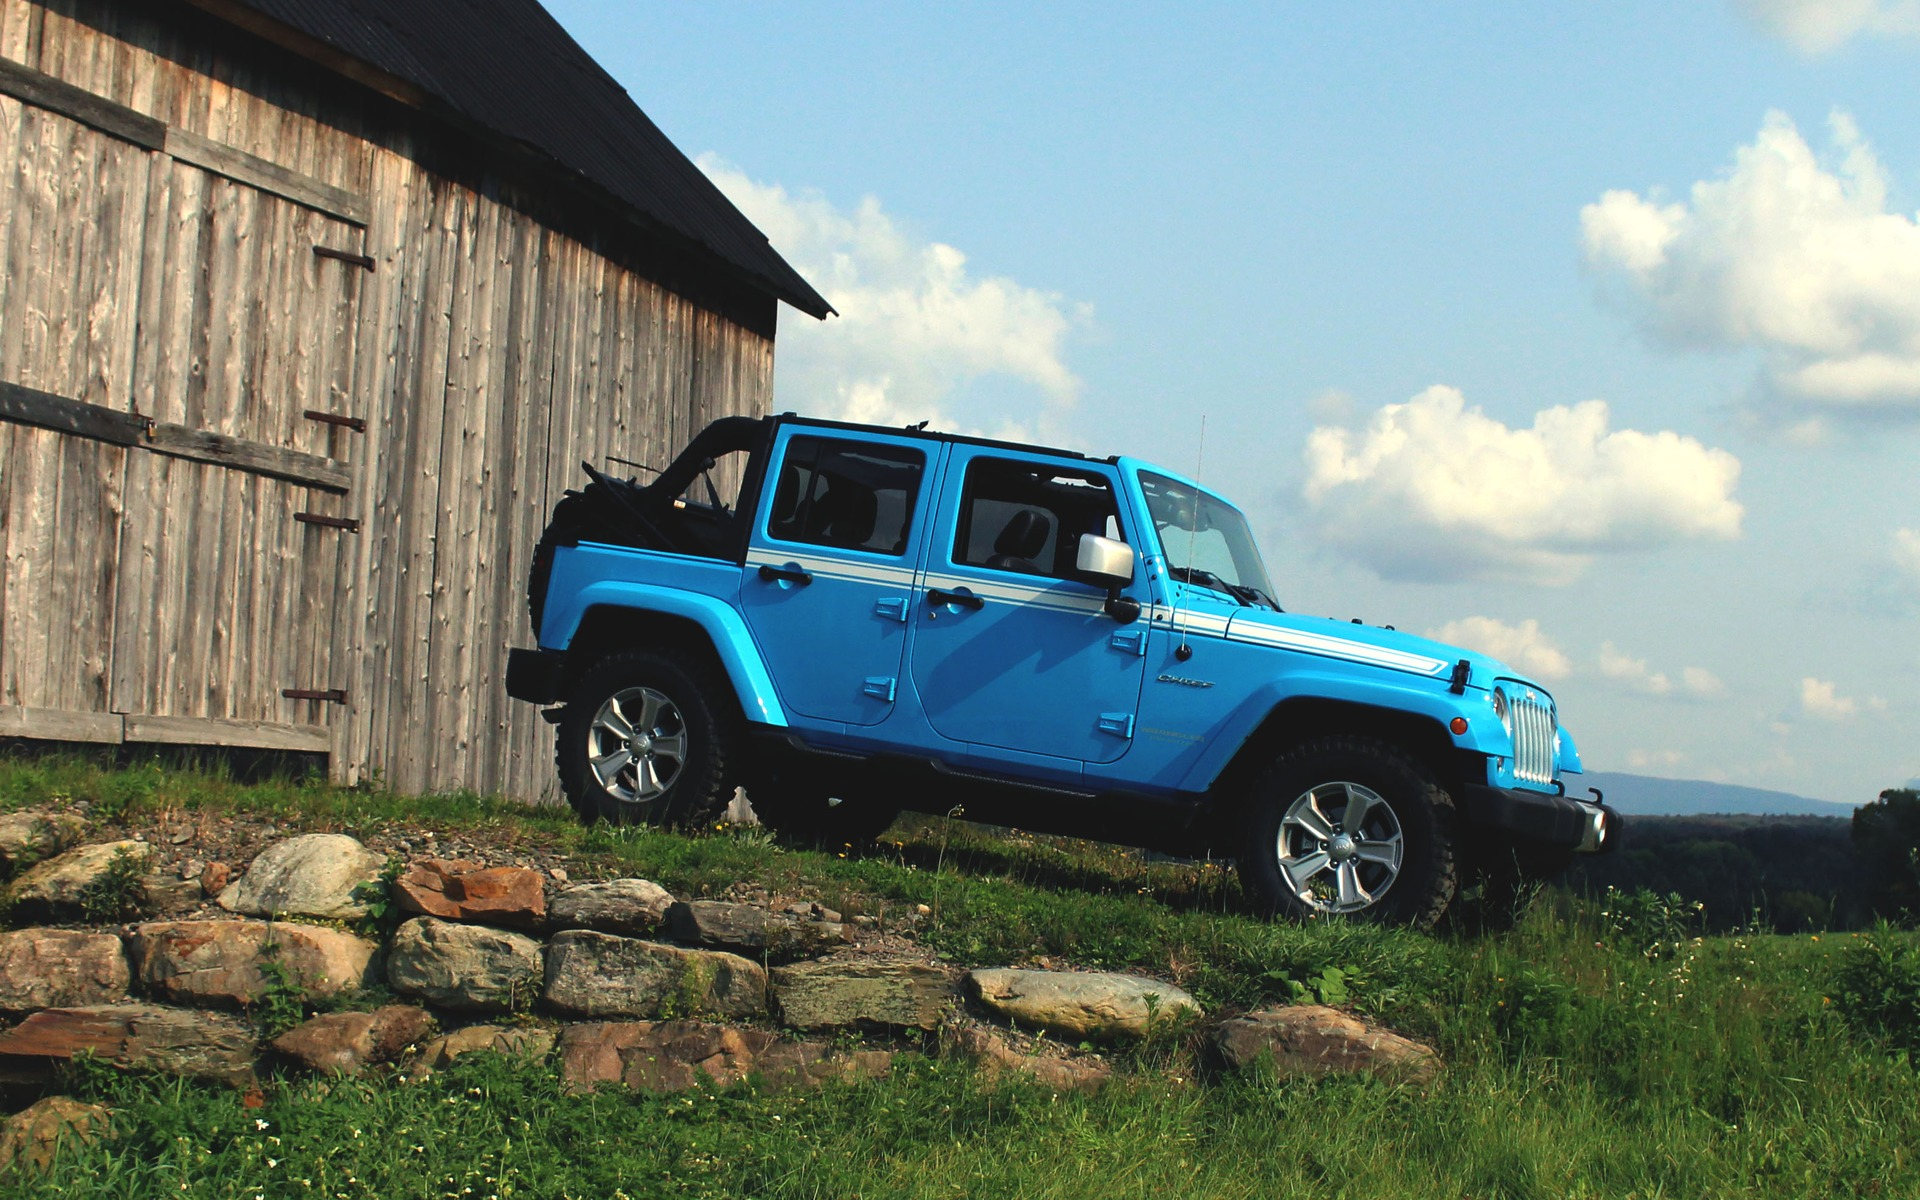 2017 Jeep Wrangler Chief Edition: Saying Goodbye to the JK